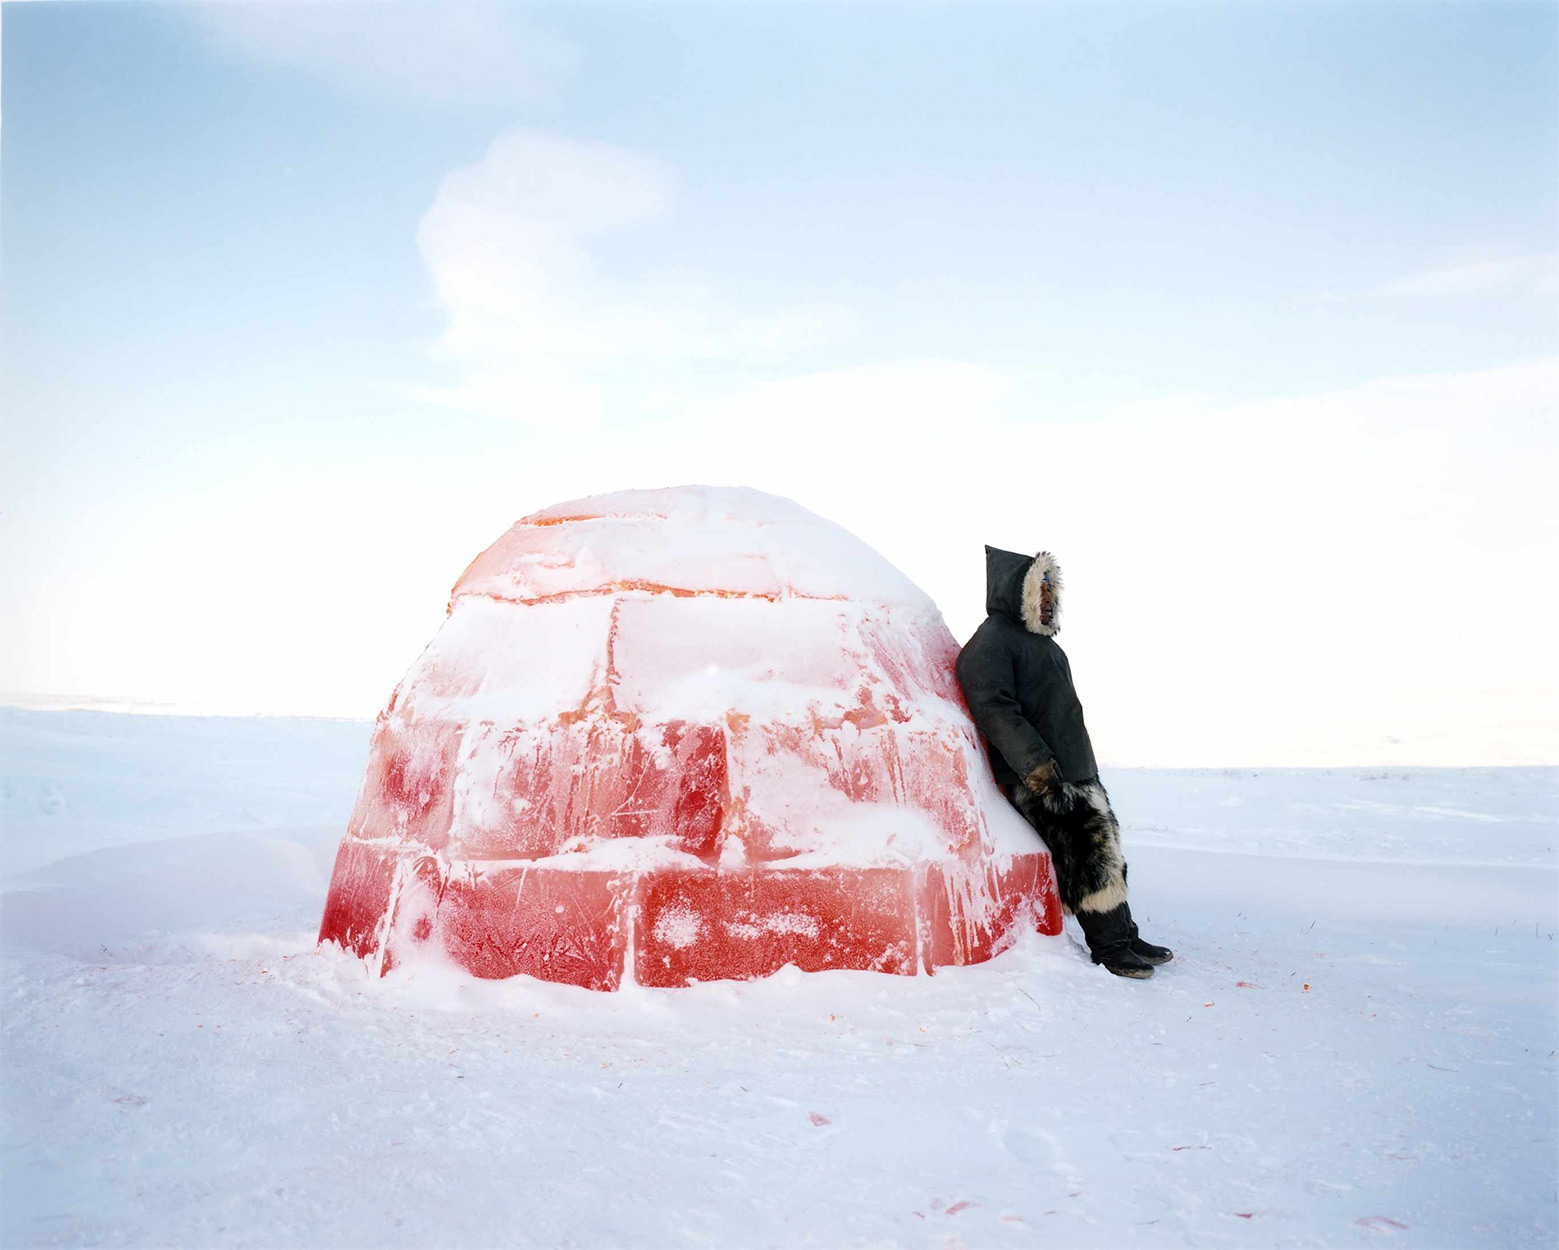 Igloo in the Canadian Arctic